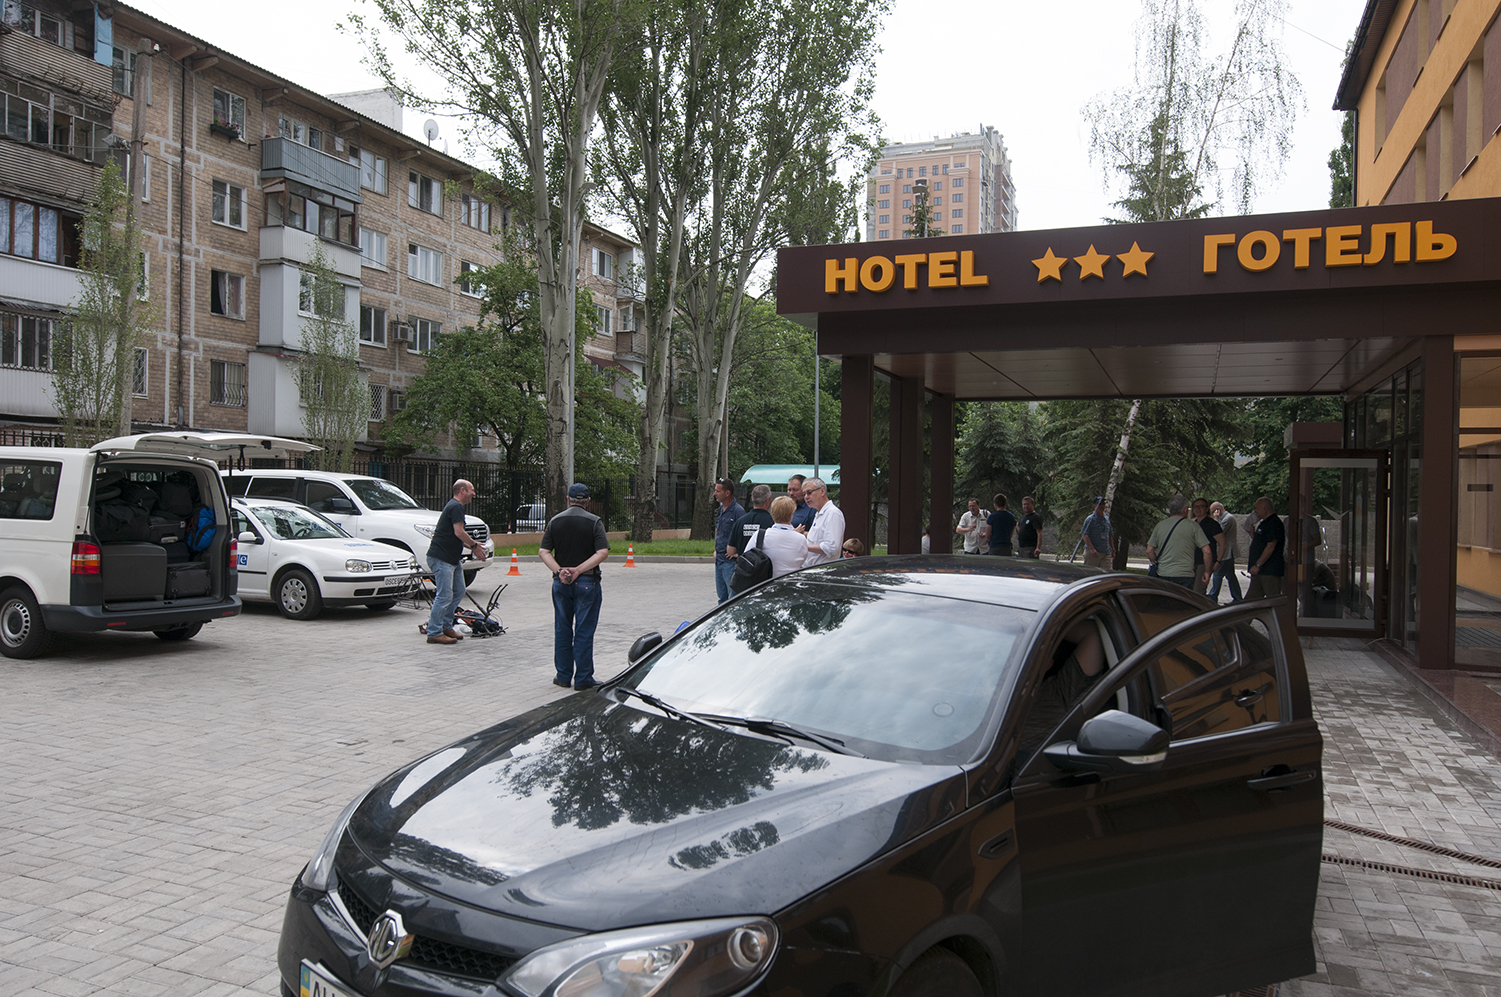 The OSCE getting ready to leave the Optima Hoteland the city of Donetsk, four members of the organisation have been reported missing since Monday evening